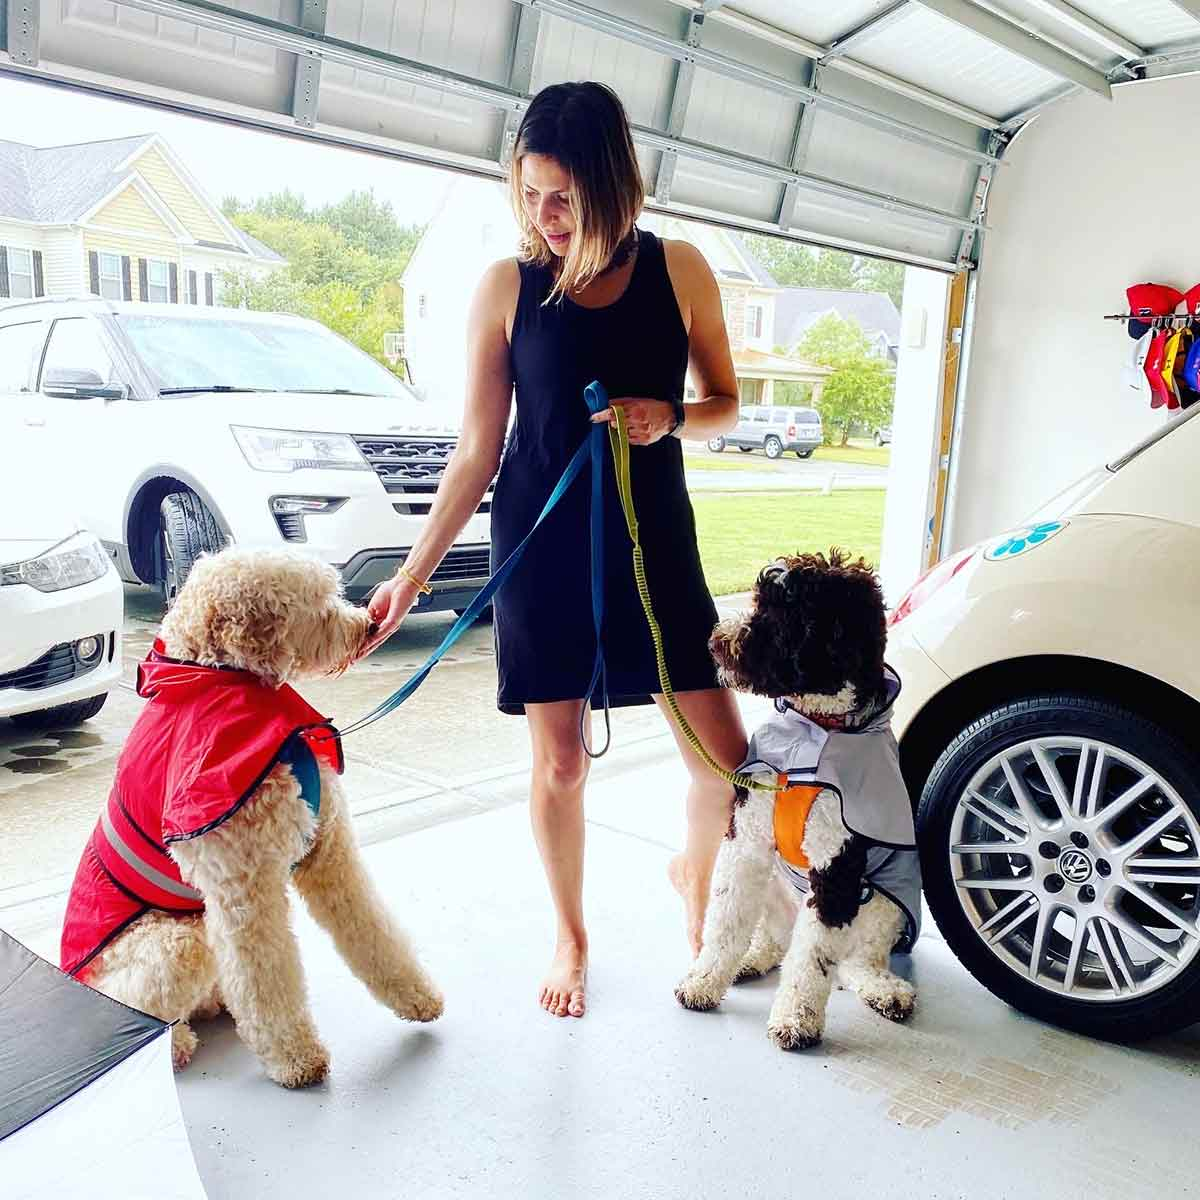 Perla with her two doodles, Bruno and Luca